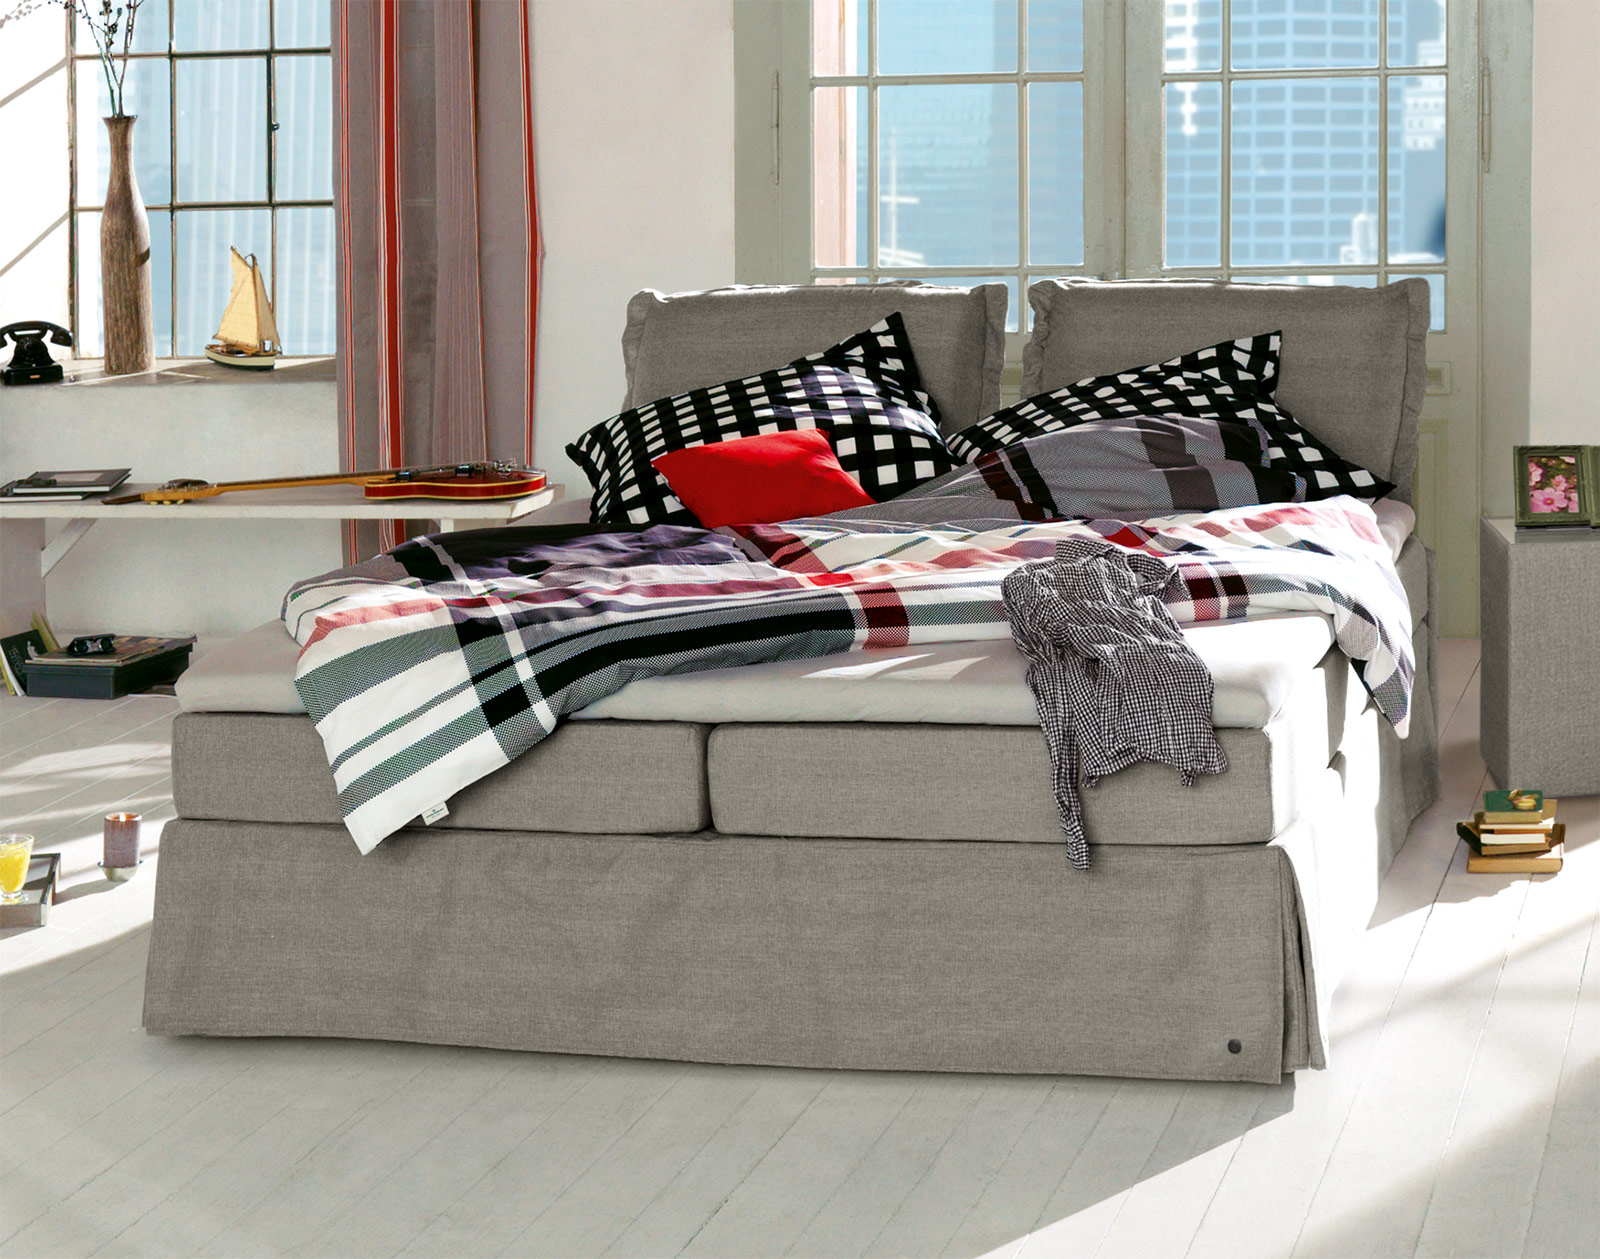 romantisches tom tailor cushion boxspringbett mit volant. Black Bedroom Furniture Sets. Home Design Ideas